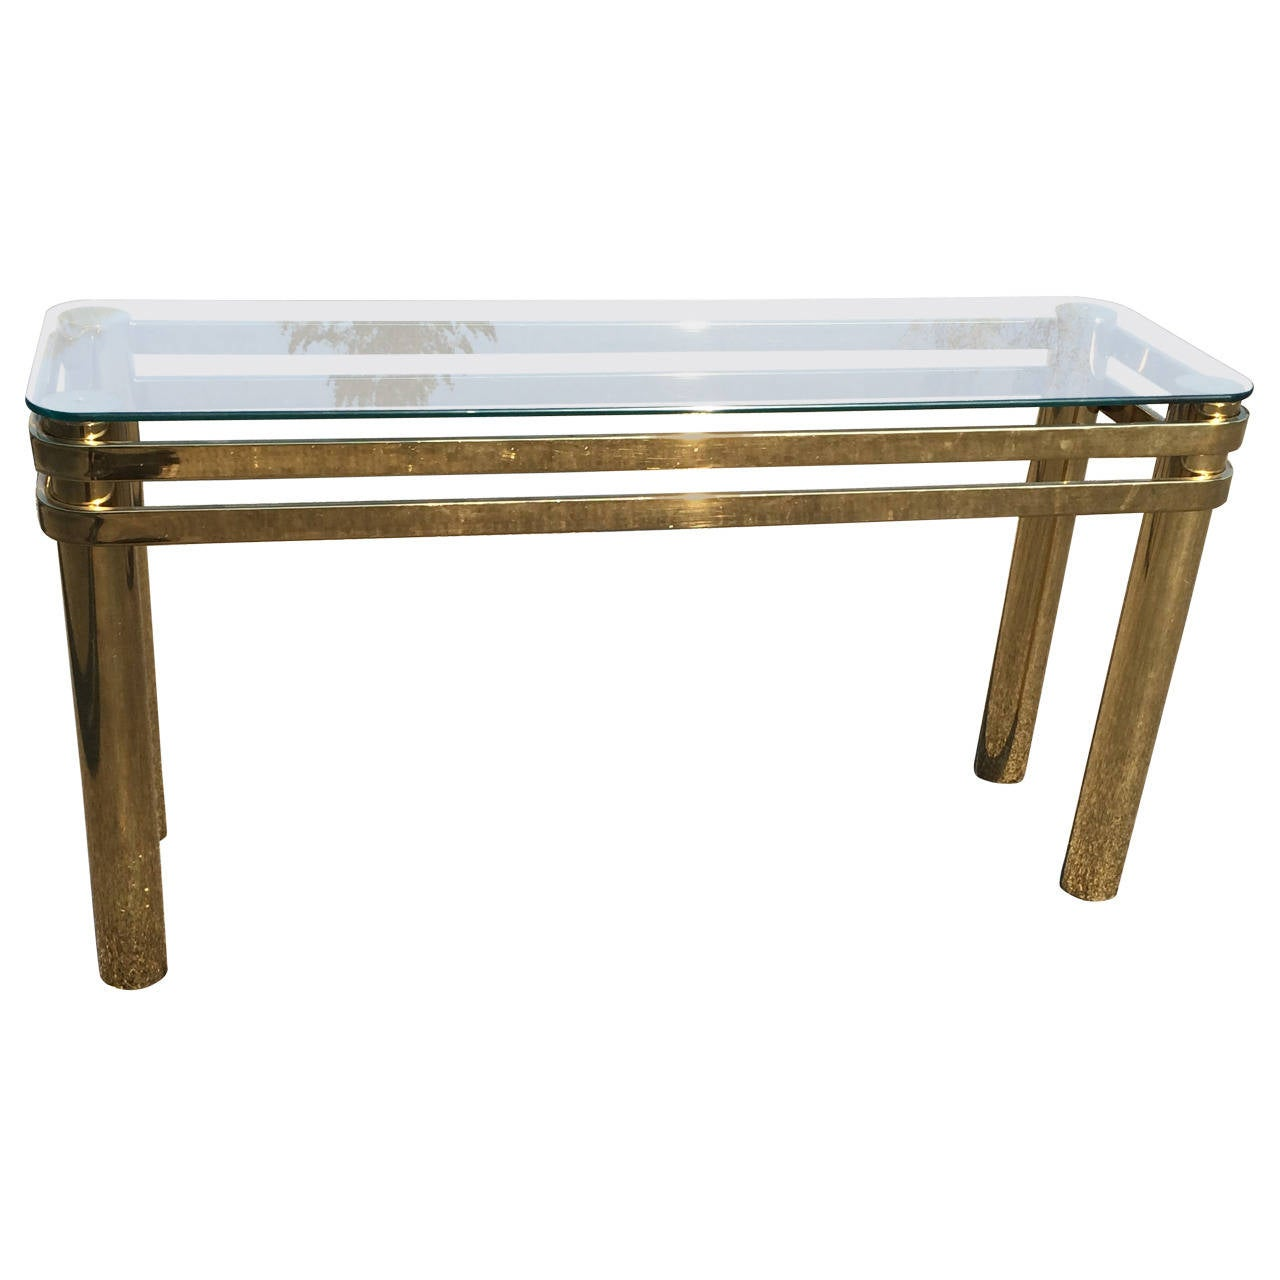 Hollywood Regency Brass Console or Sofa Table by Pace